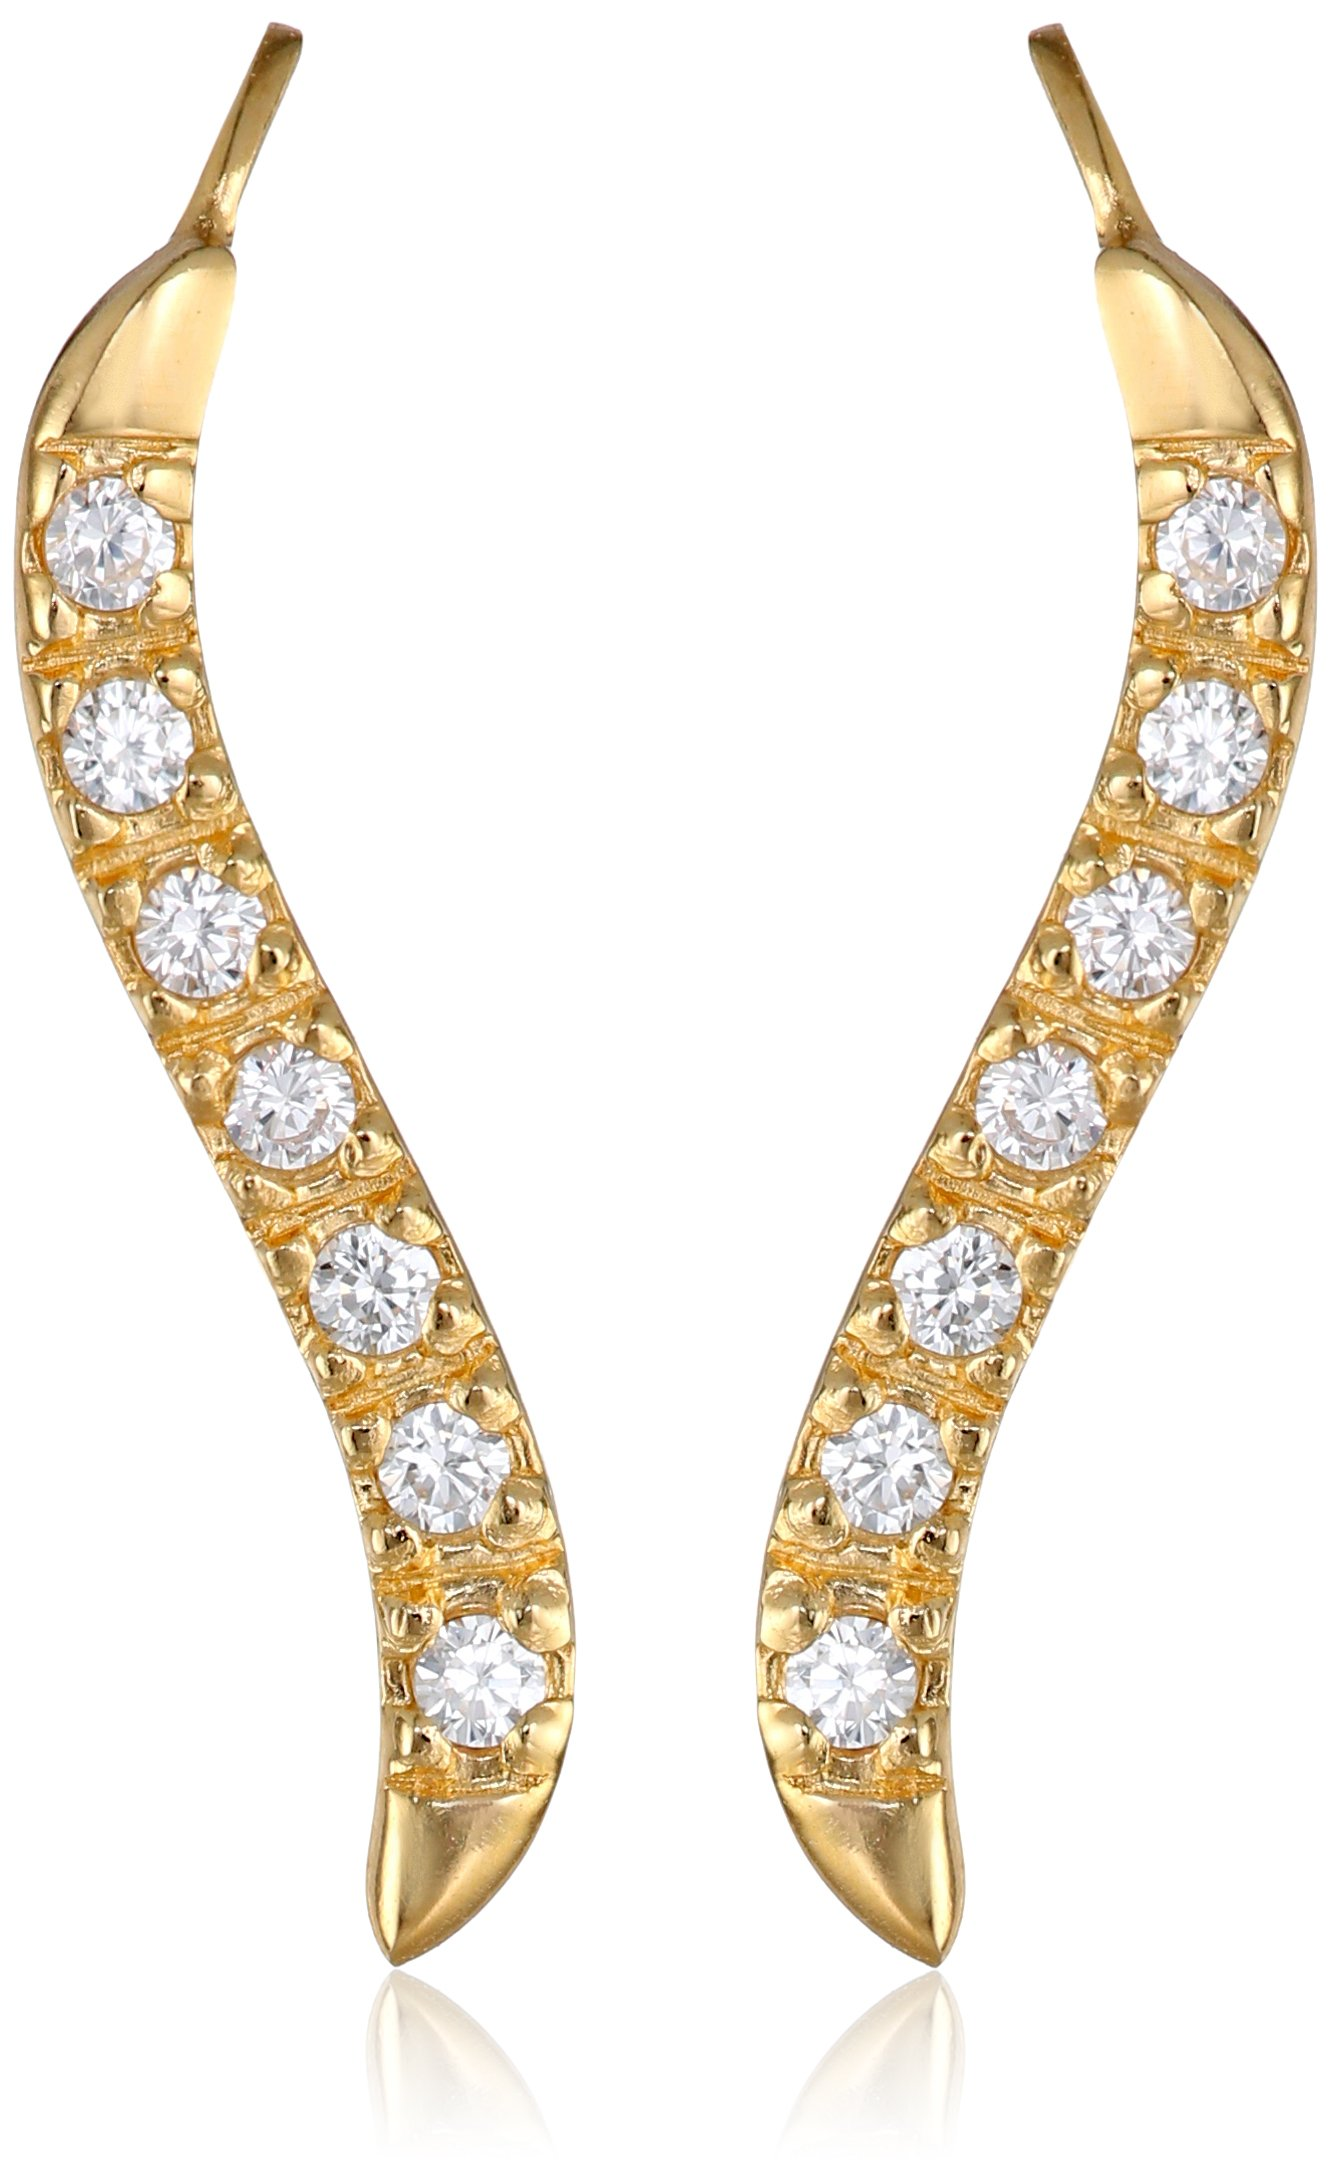 The Ear Pin Cubic Zirconias Gold Over Silver Short Version Classic Earrings